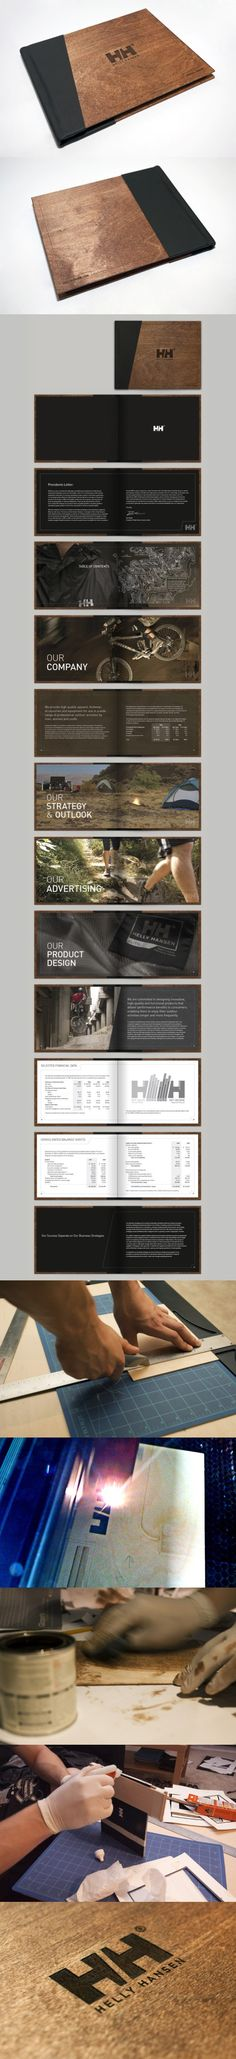 Helly Hansen Annual Report    via  http://www.behance.net/gallery/Helly-Hansen-Annual-Report/324530